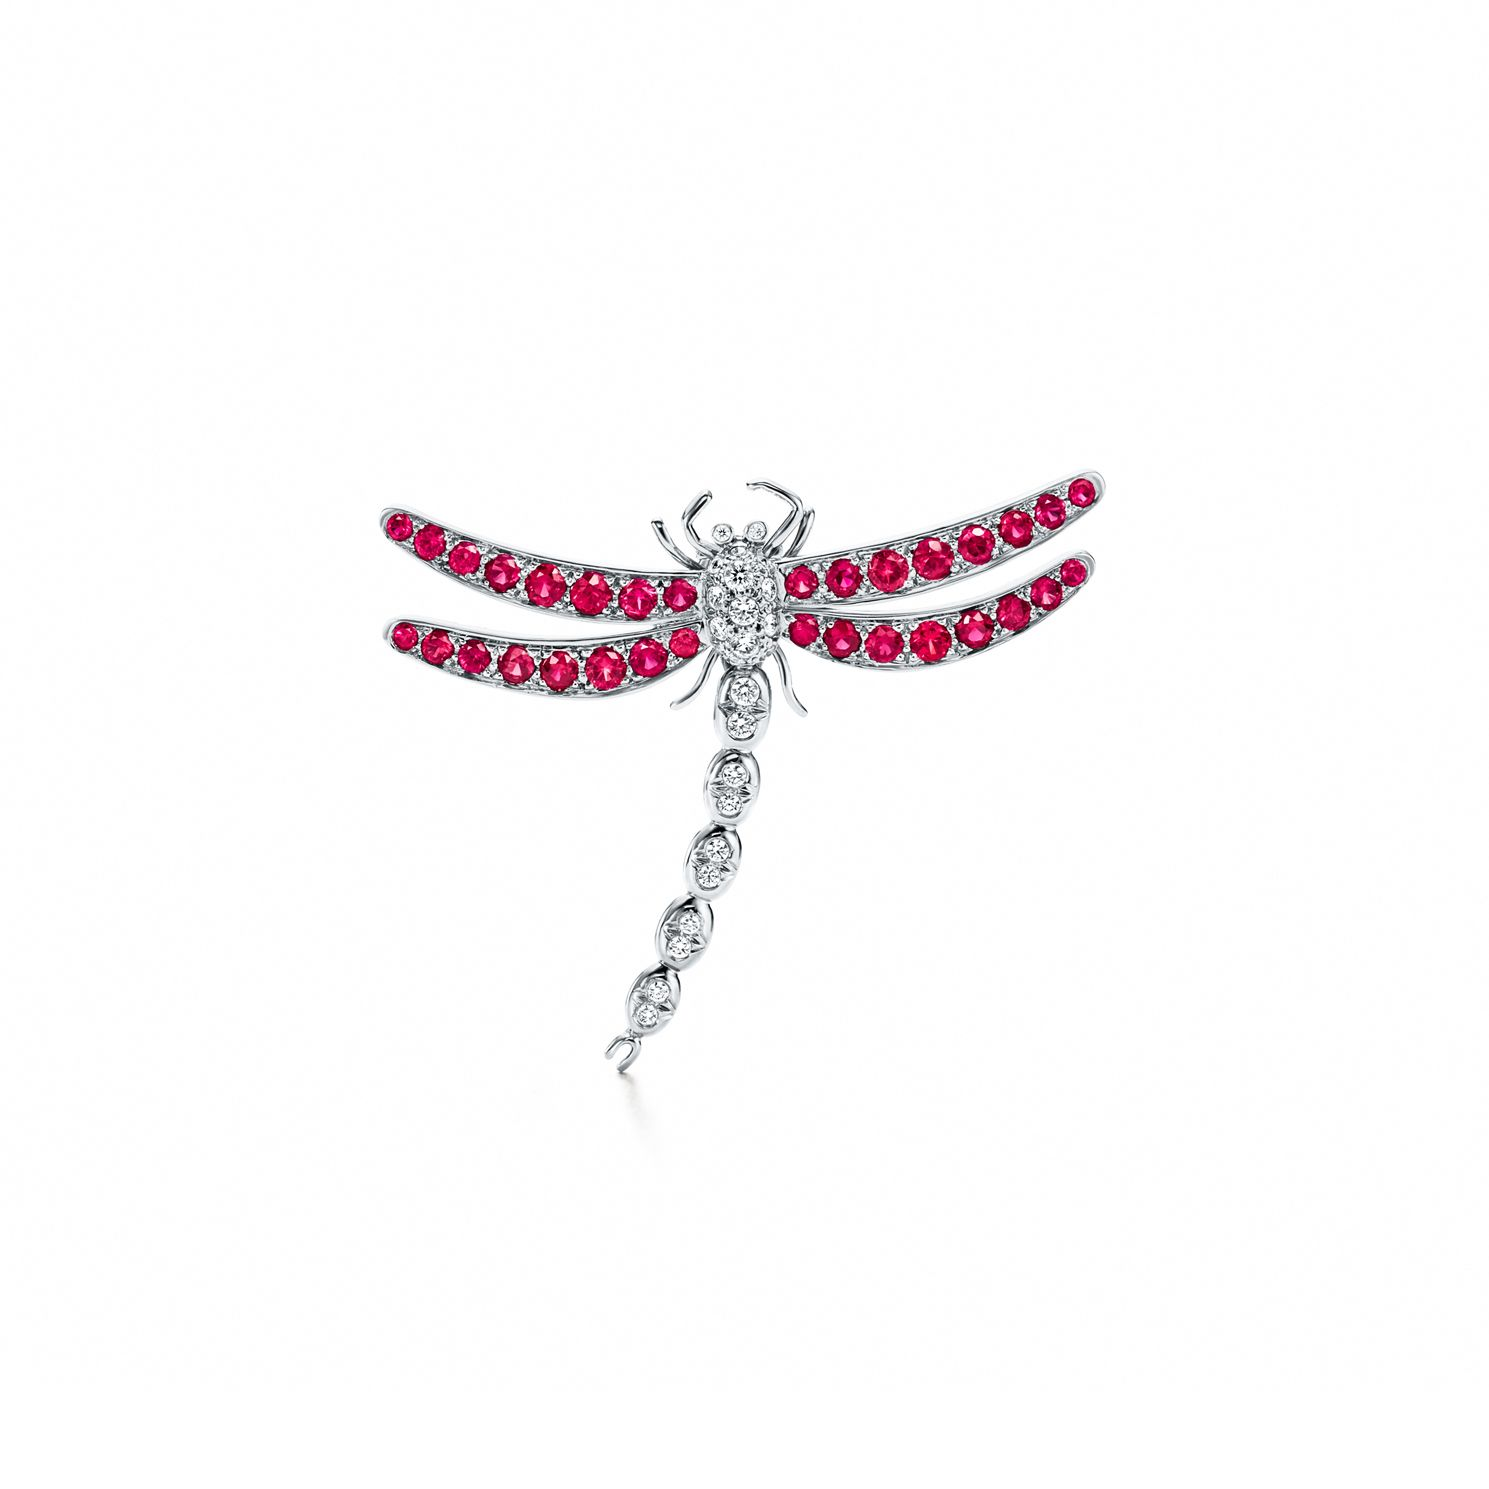 Tiffany & Co. Rubies Make A Blazing Return For Christmas